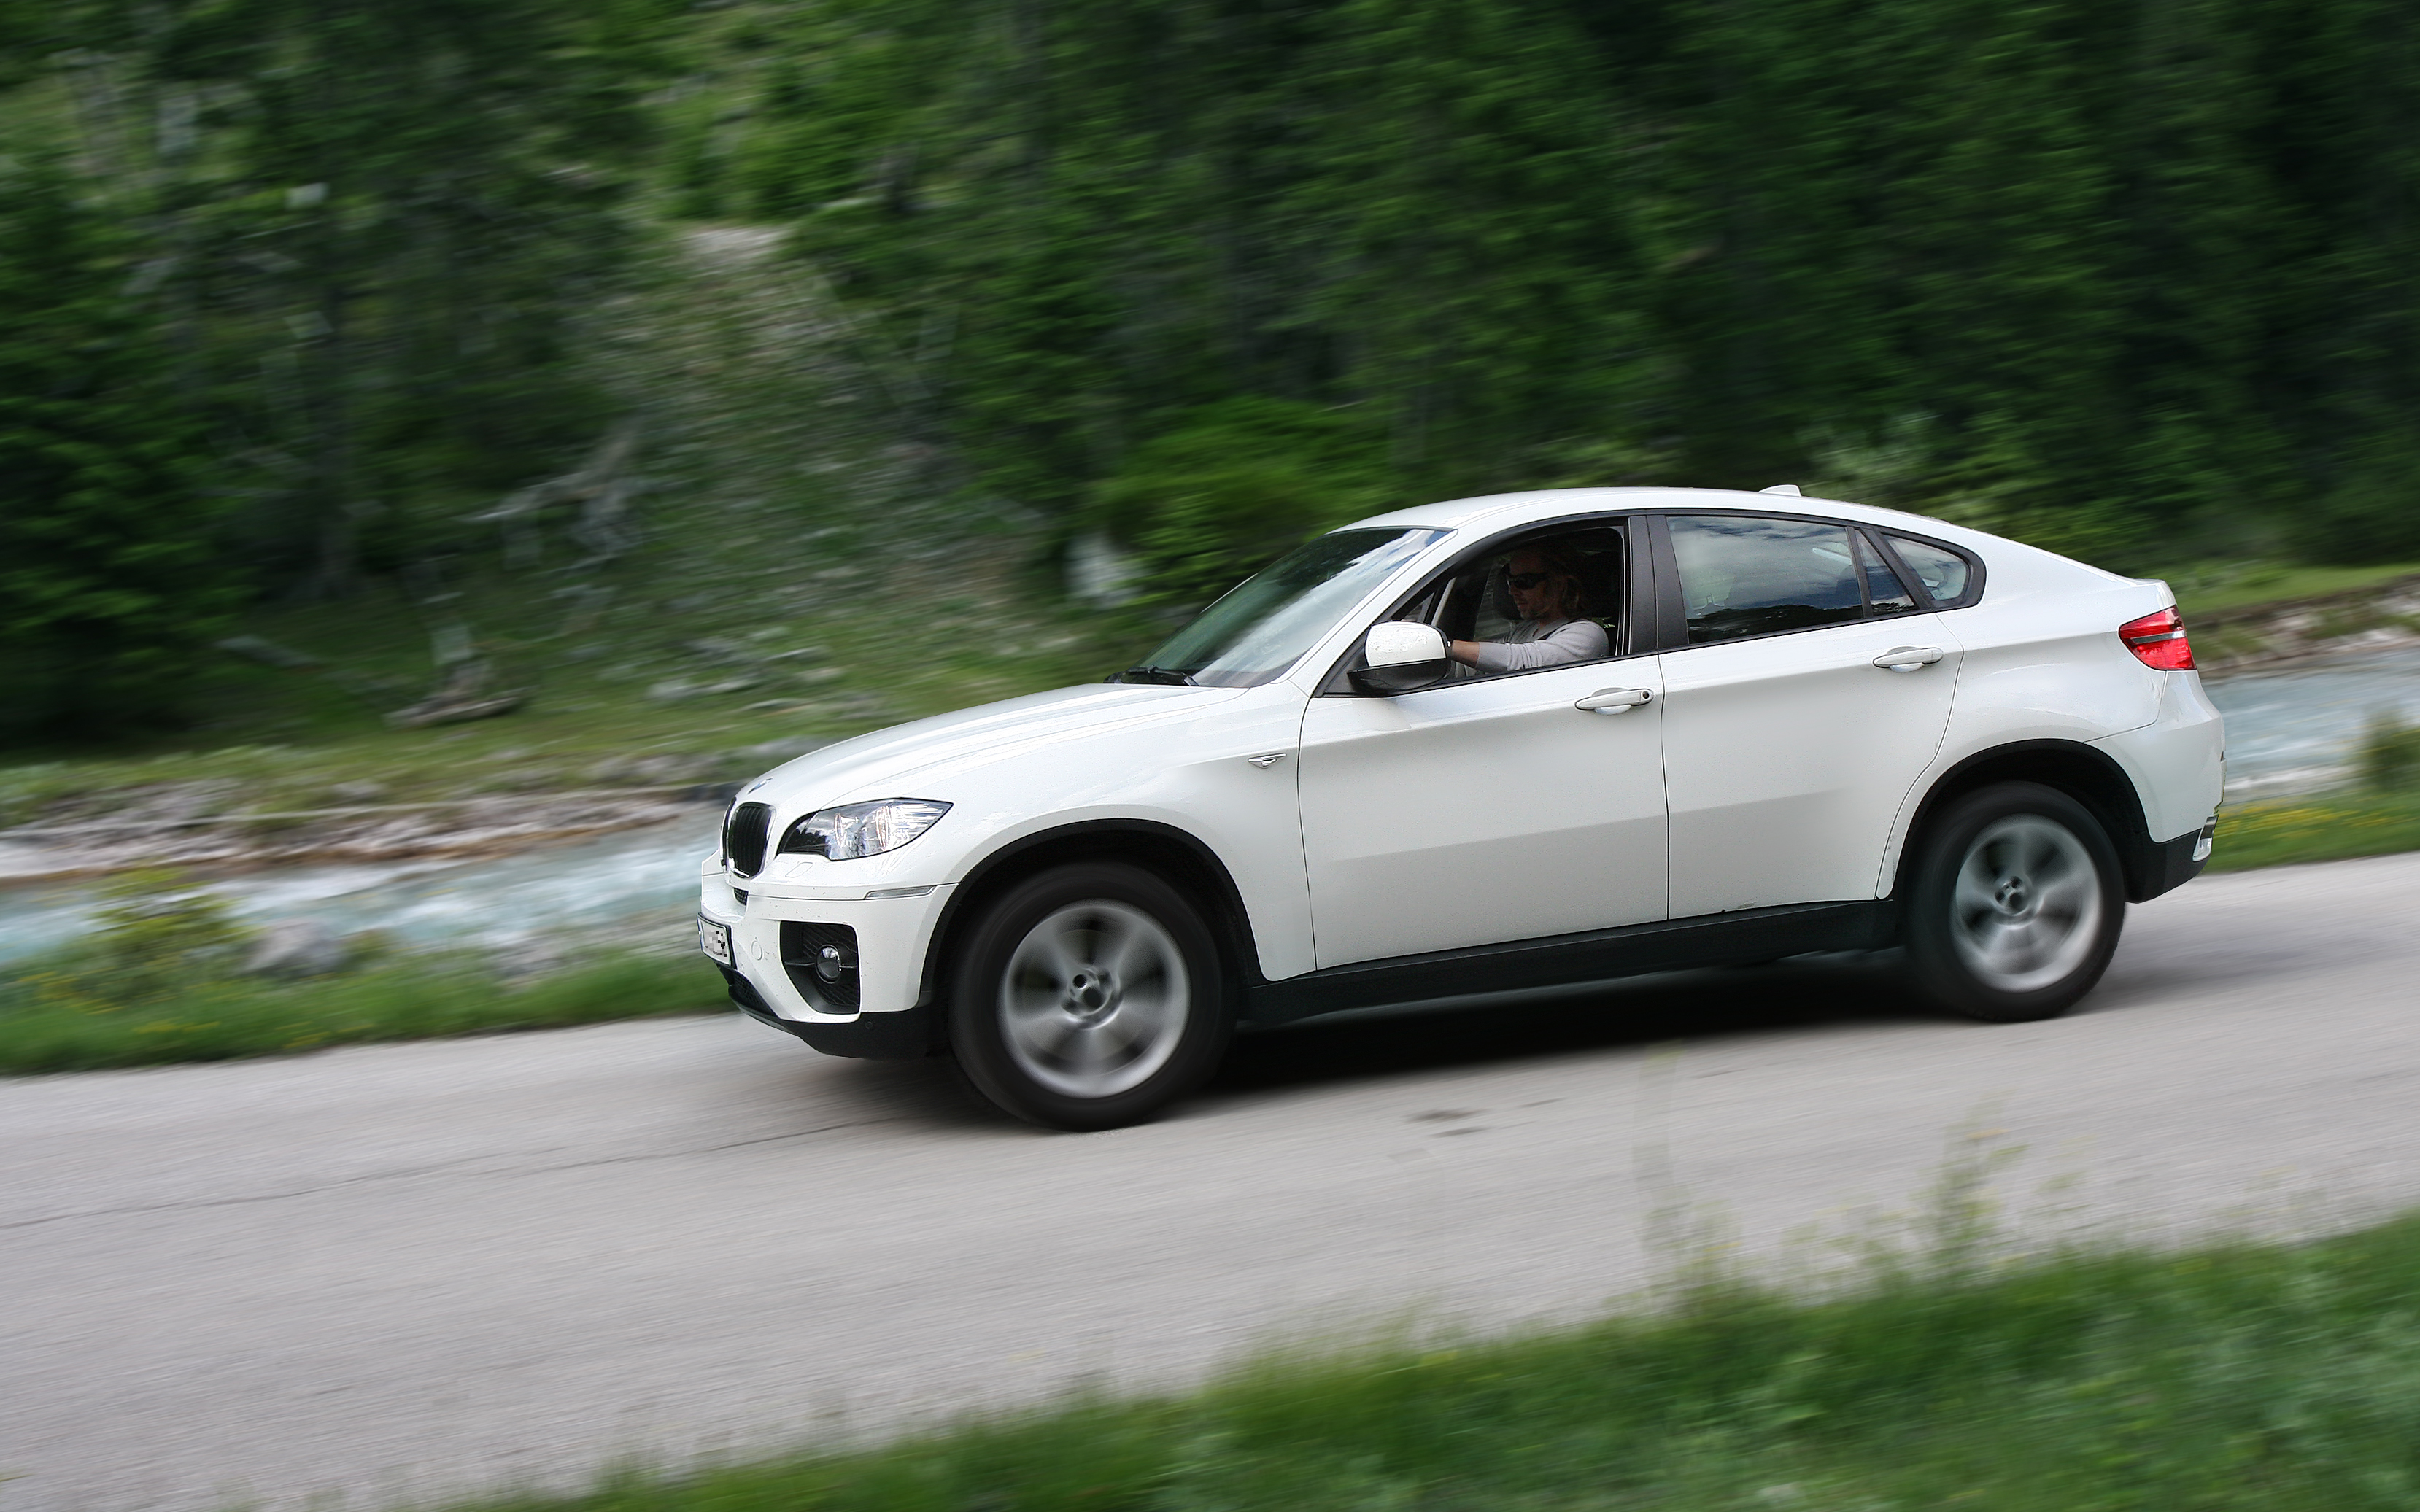 Файл Bmw X6 Sideview Jpg Википедия